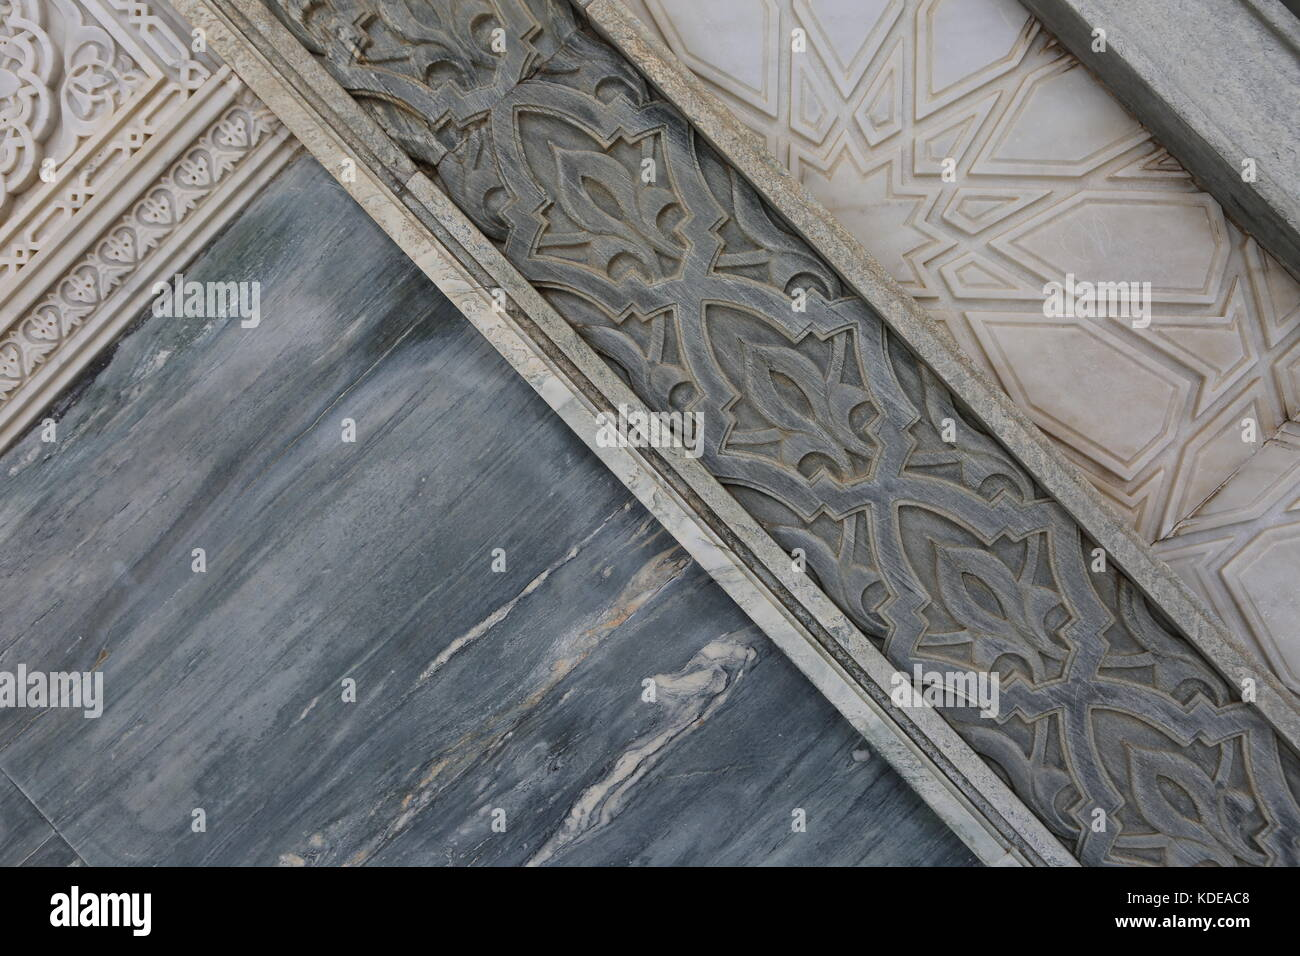 Muster Marokko an Türe und Wand - Morocco pattern on door and wall - - Stock Image